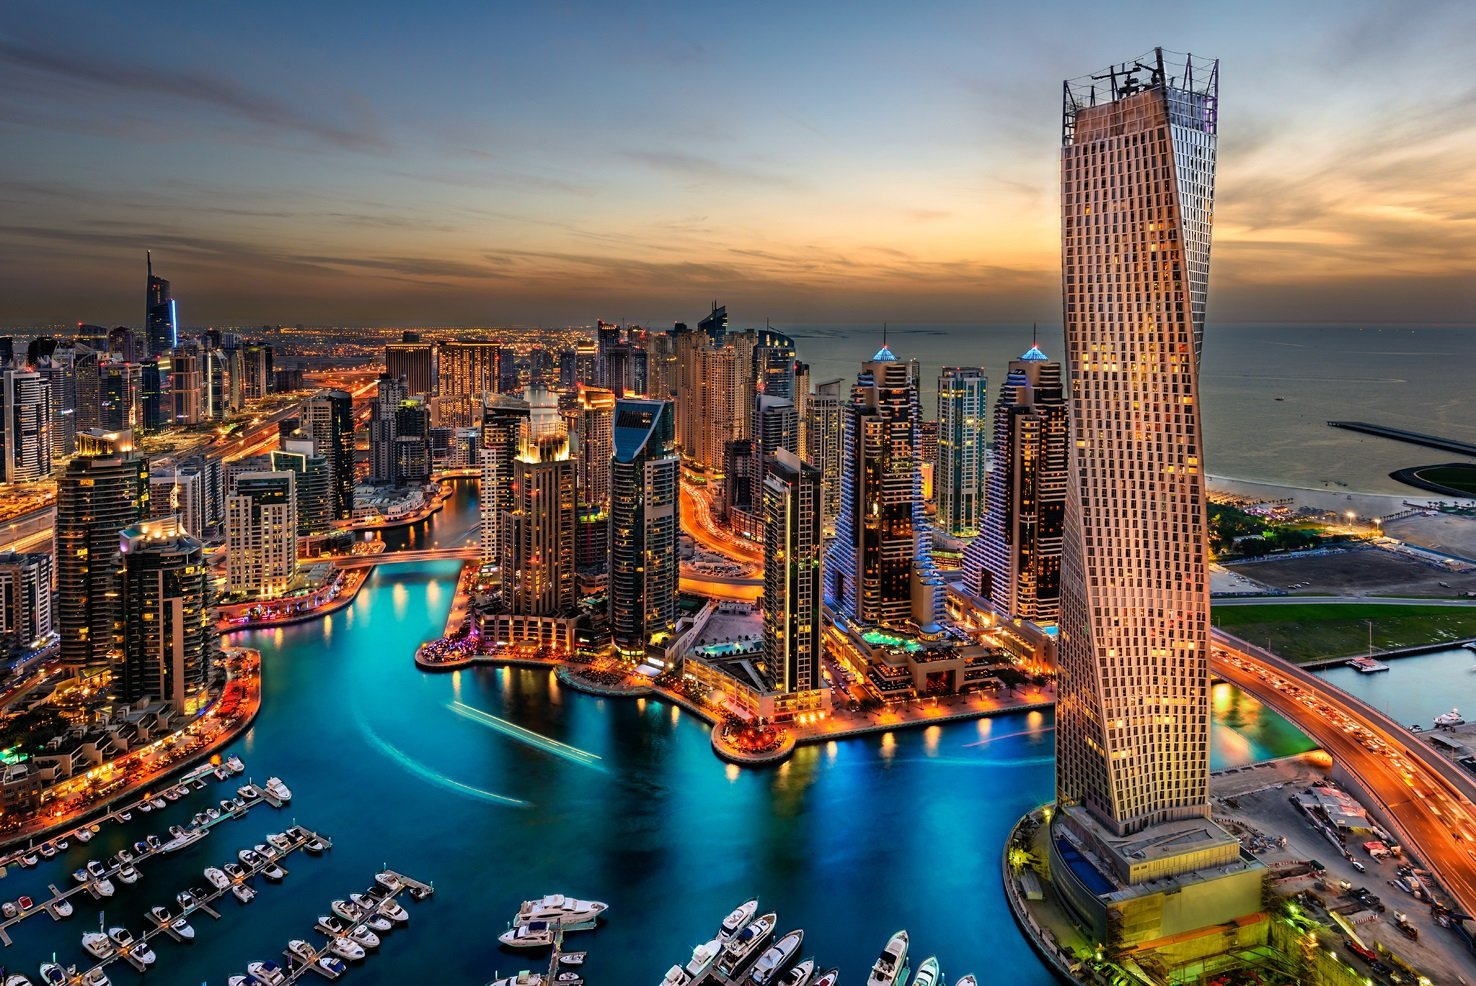 Hotels near Dubai, United Arab Emirates